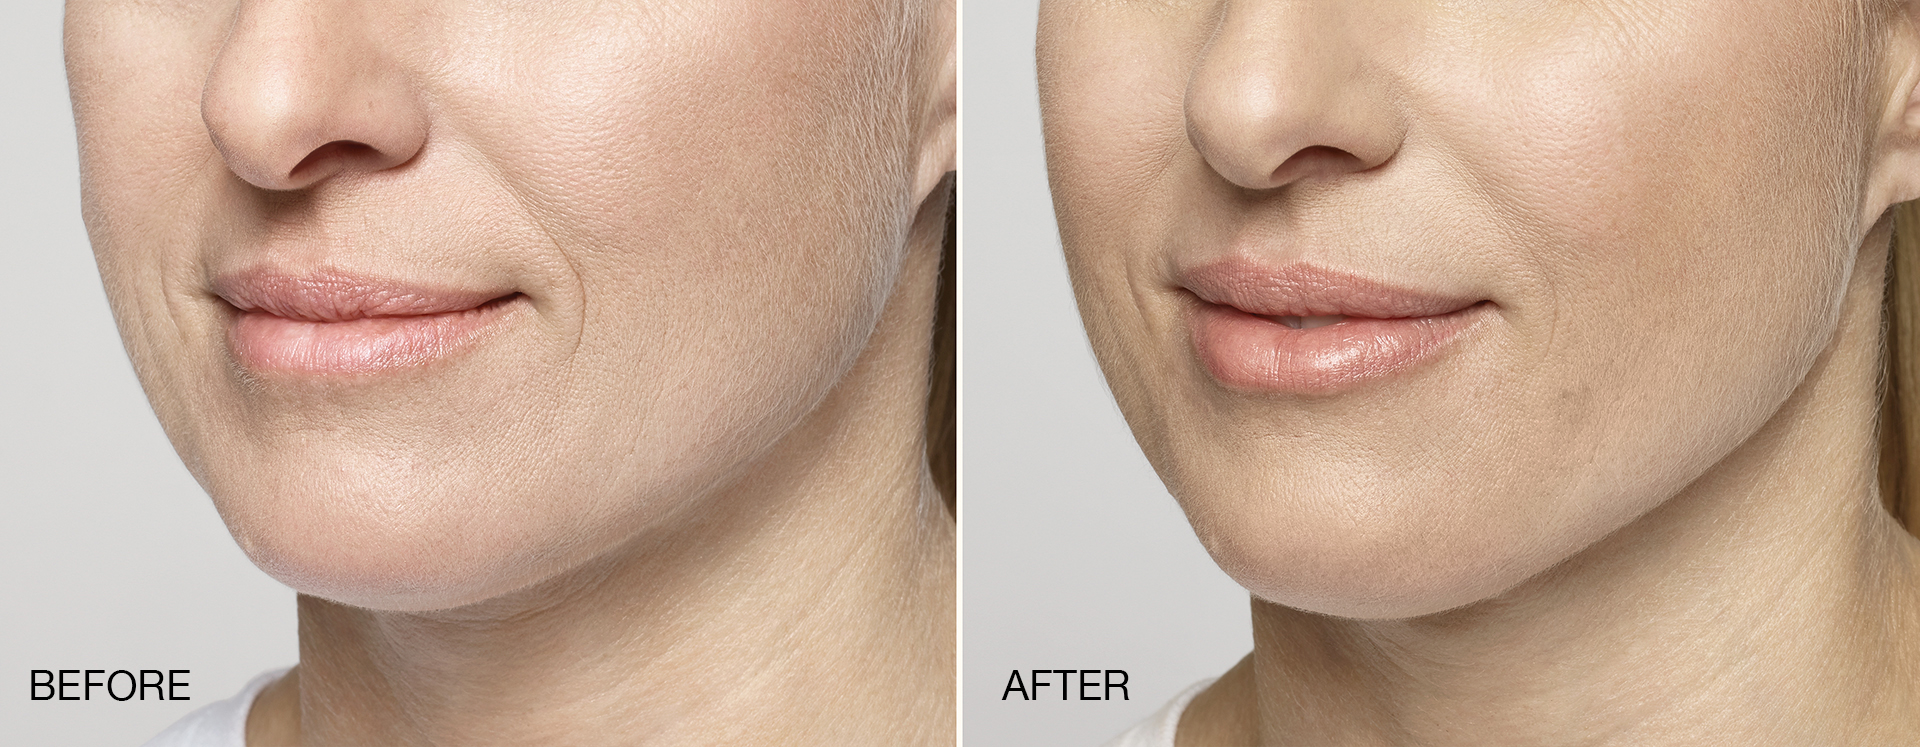 Here, Restylane® Silk was used to add fullness to the lips.